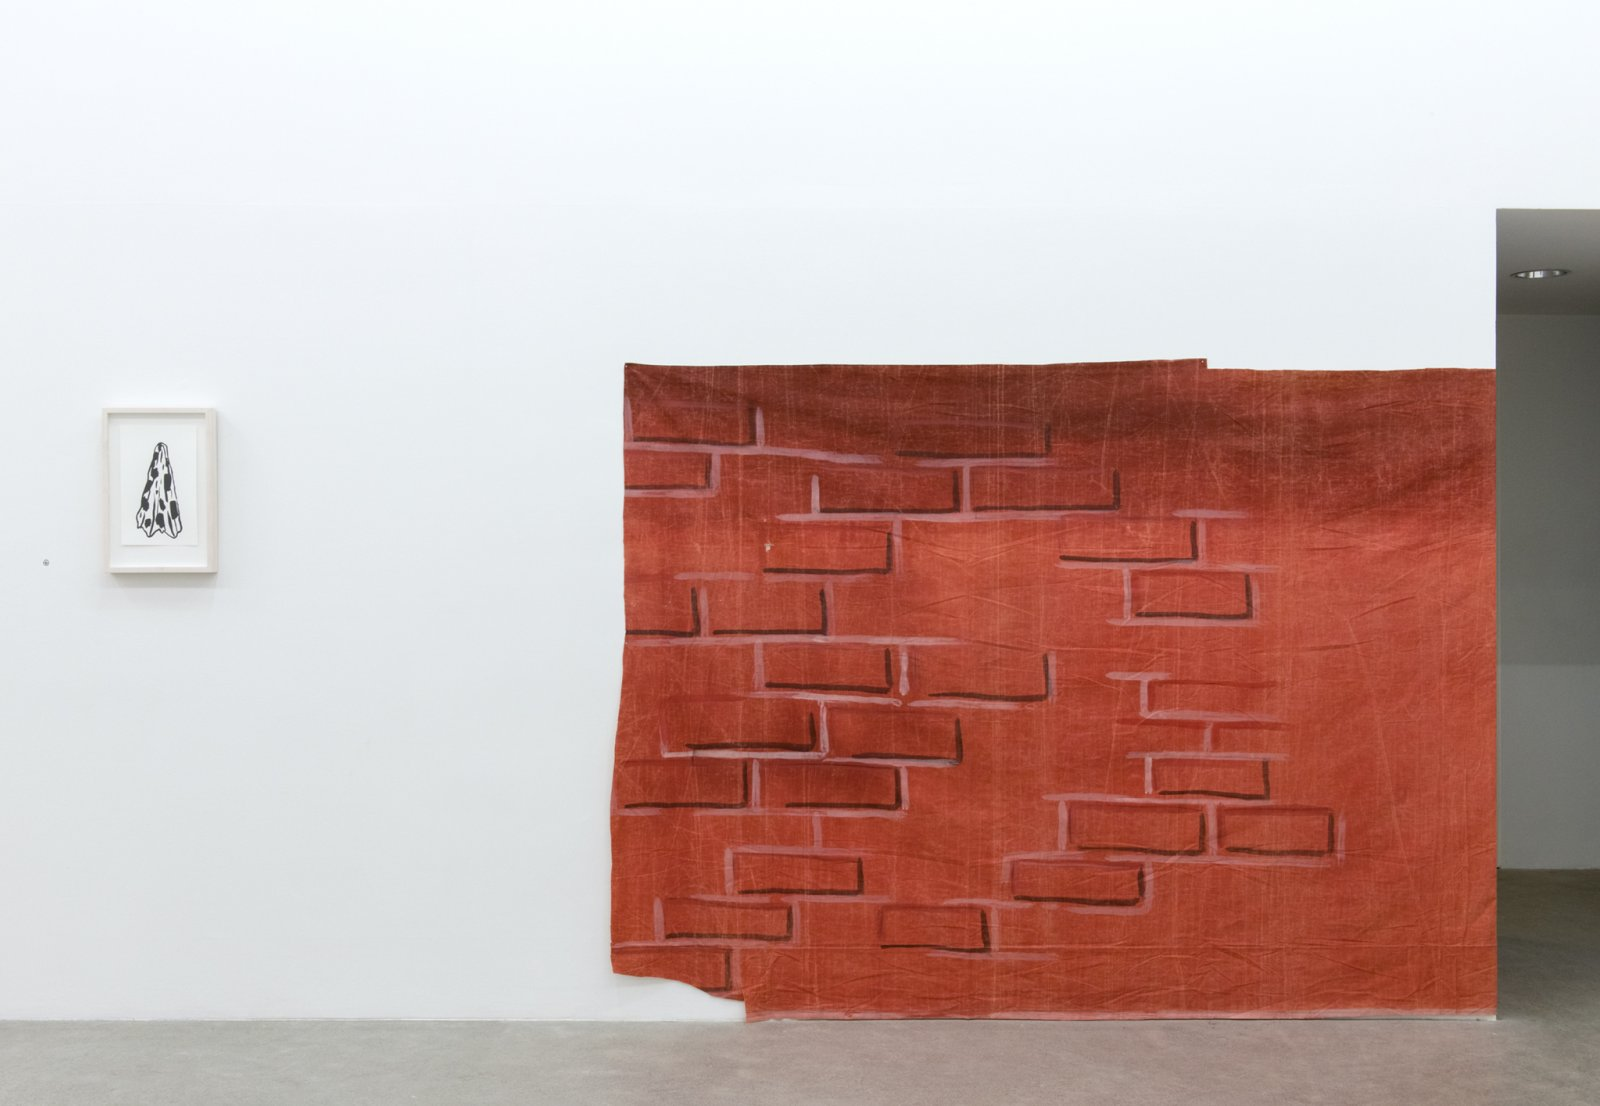 Geoffrey Farmer, LIPSTICK BRICK WITH MID VOWEL AFOUL DISH TOWEL, 2017, ink on paper, theatre backdrop (1939), backdrop: 71 x 200 in (180 x 508 cm), drawing: 18 x 12 in. (45 x 30 cm)